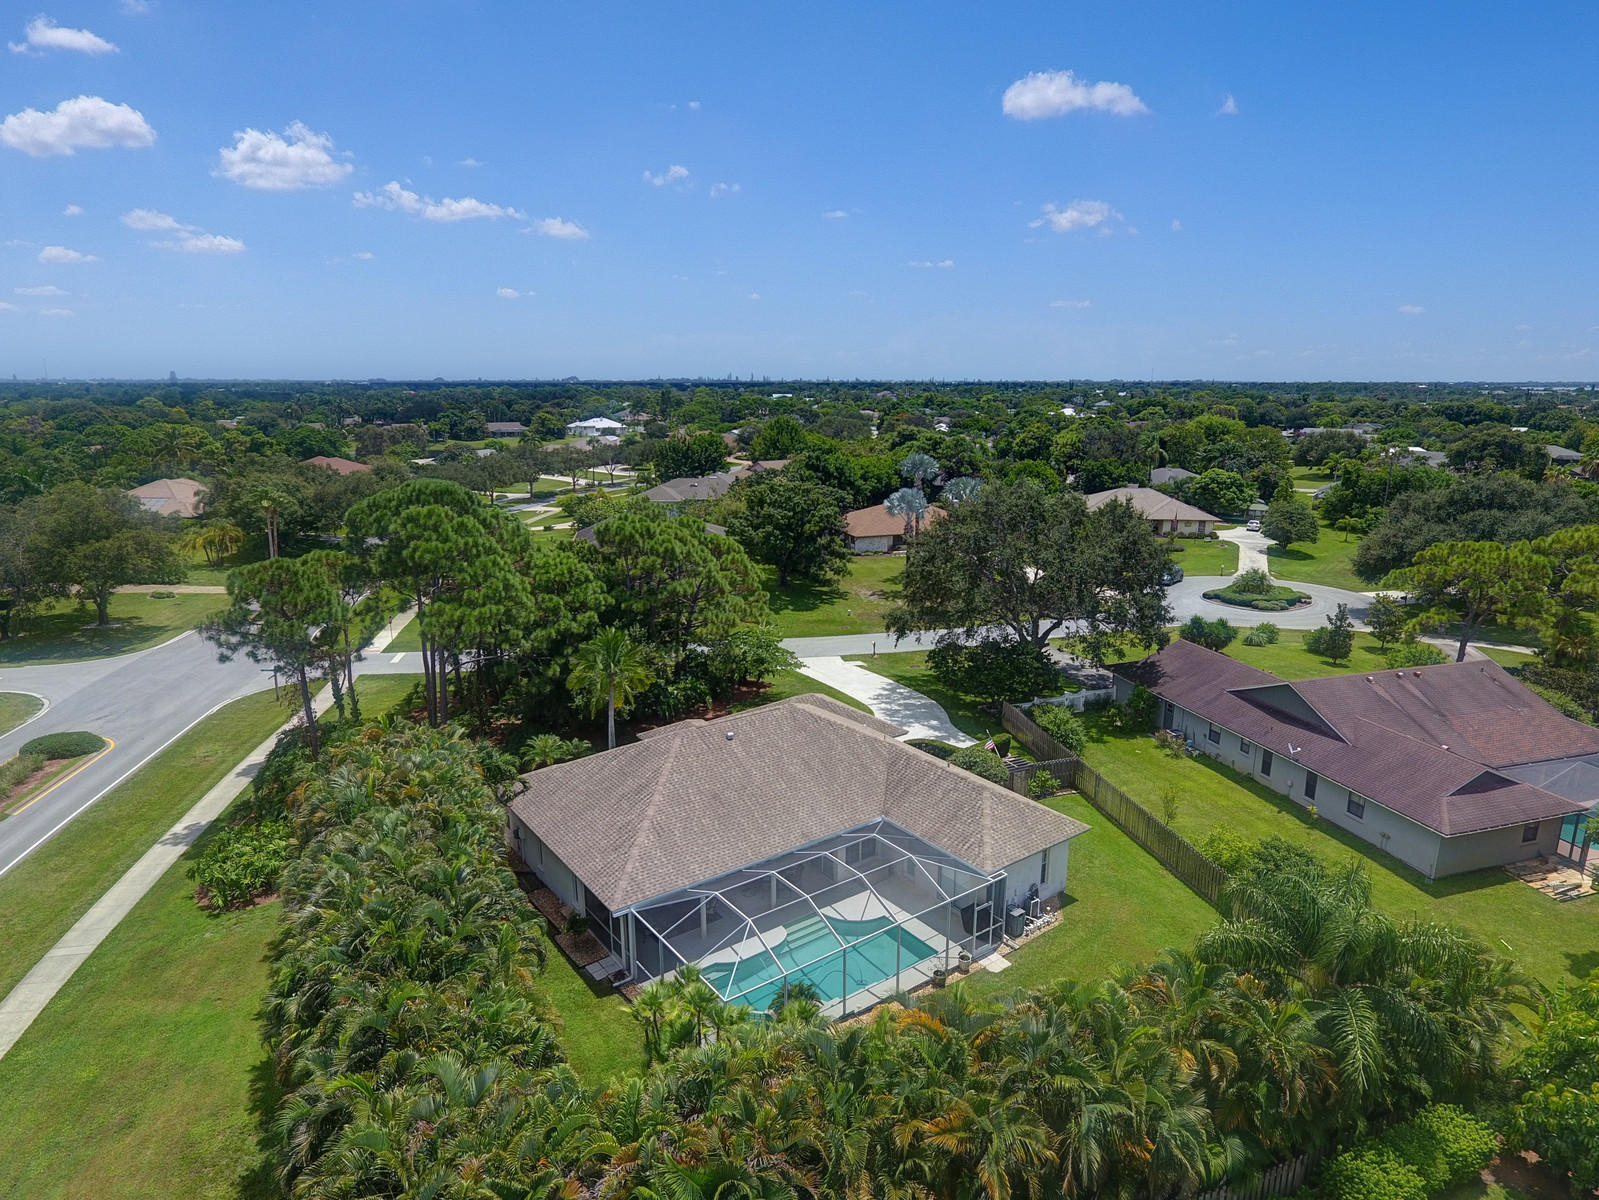 PINECREST LAKES HOMES